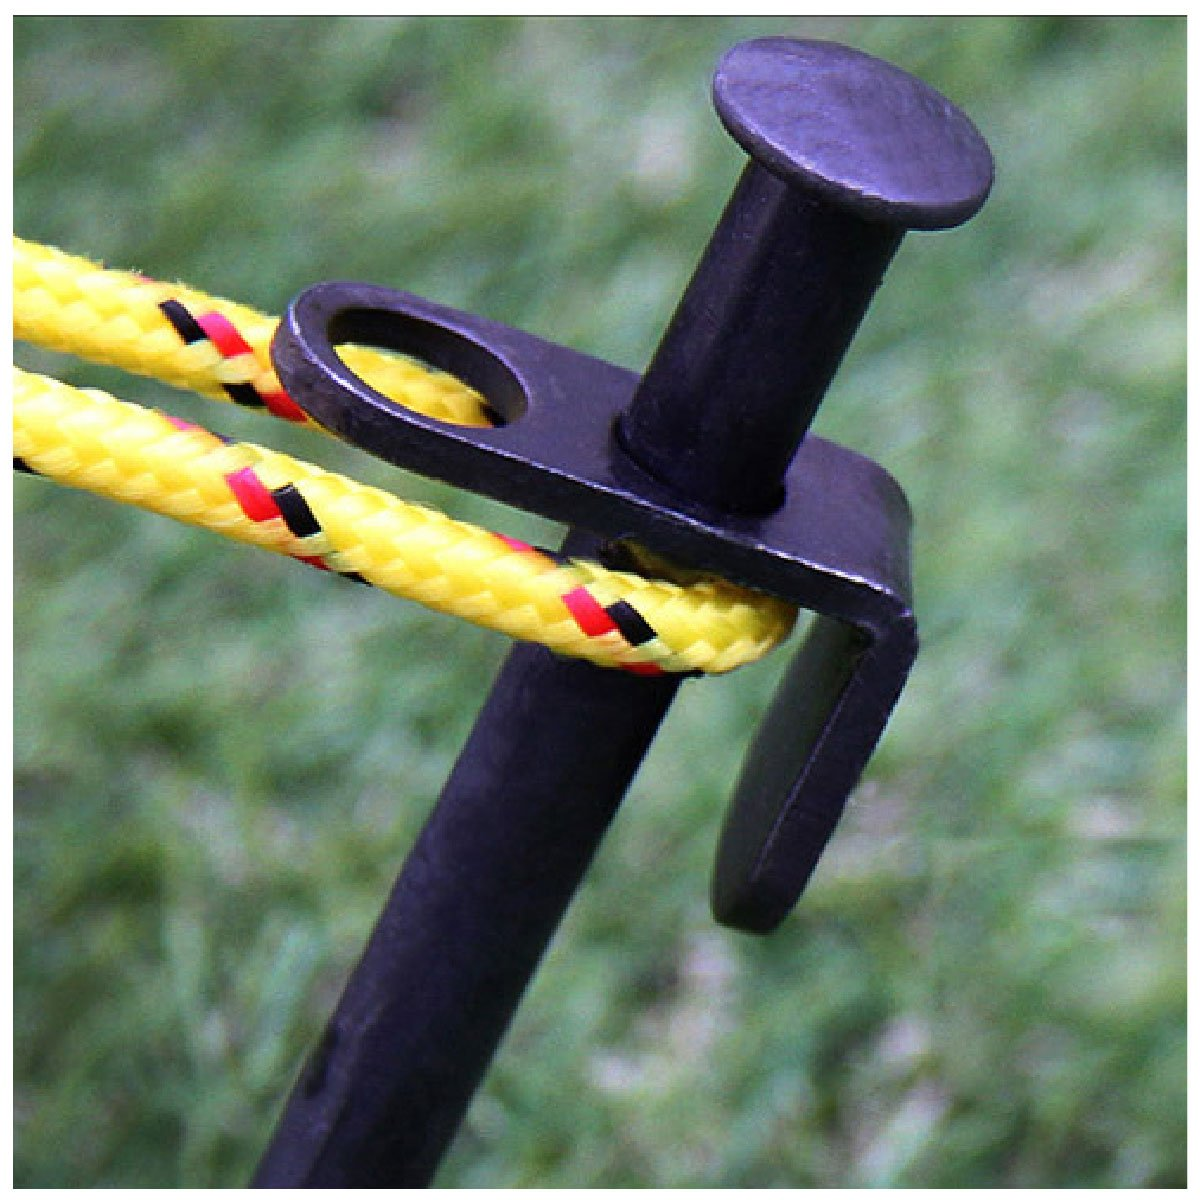 YAPJEB Steel Tent Solid Stakes Pegs Steel Camping Footprint Heavy Duty Tent Pegs with Fabric Pouch